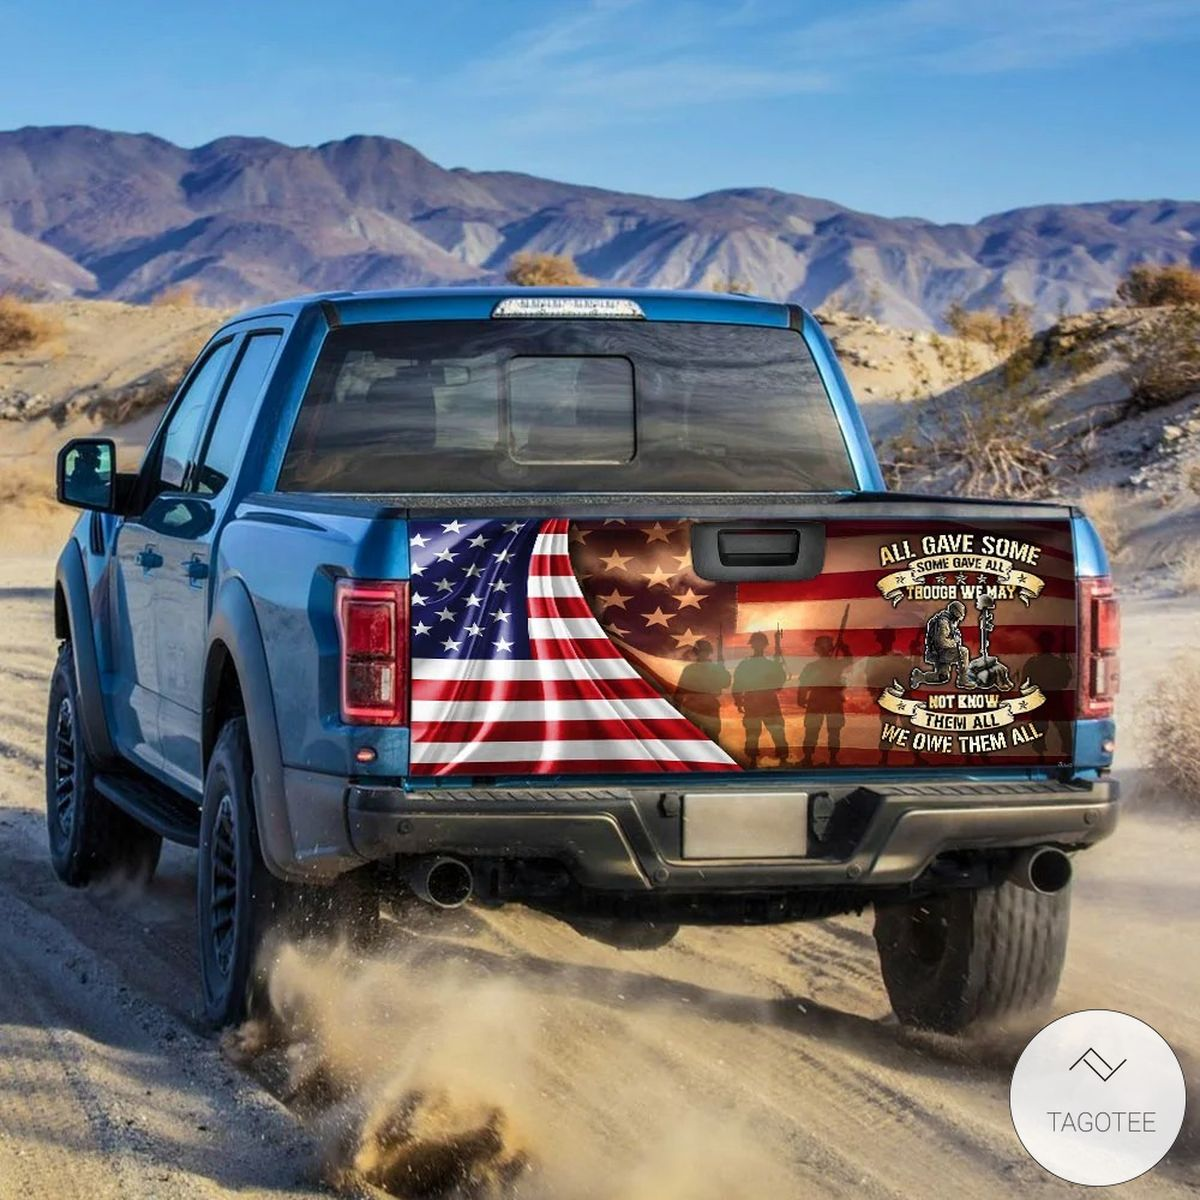 Veteran All Gave Some Some Gave All Tailgate Wrapz